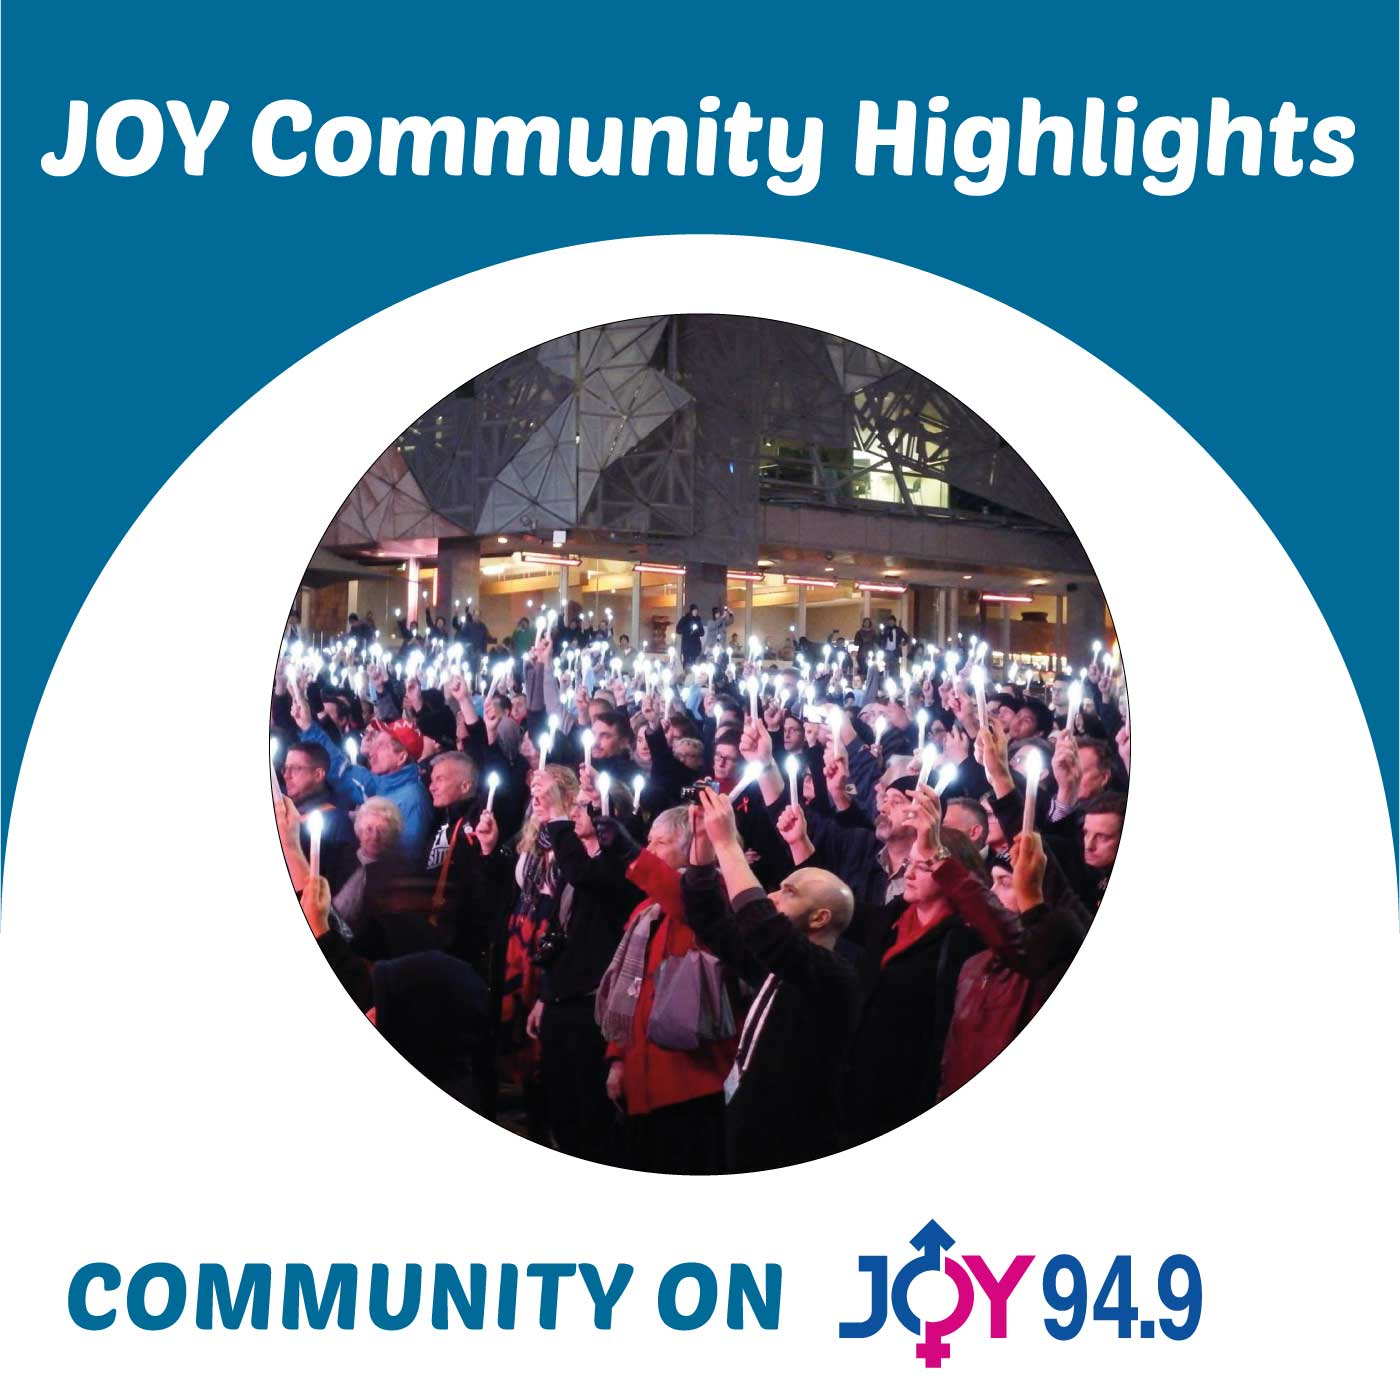 JOY Community Highlights